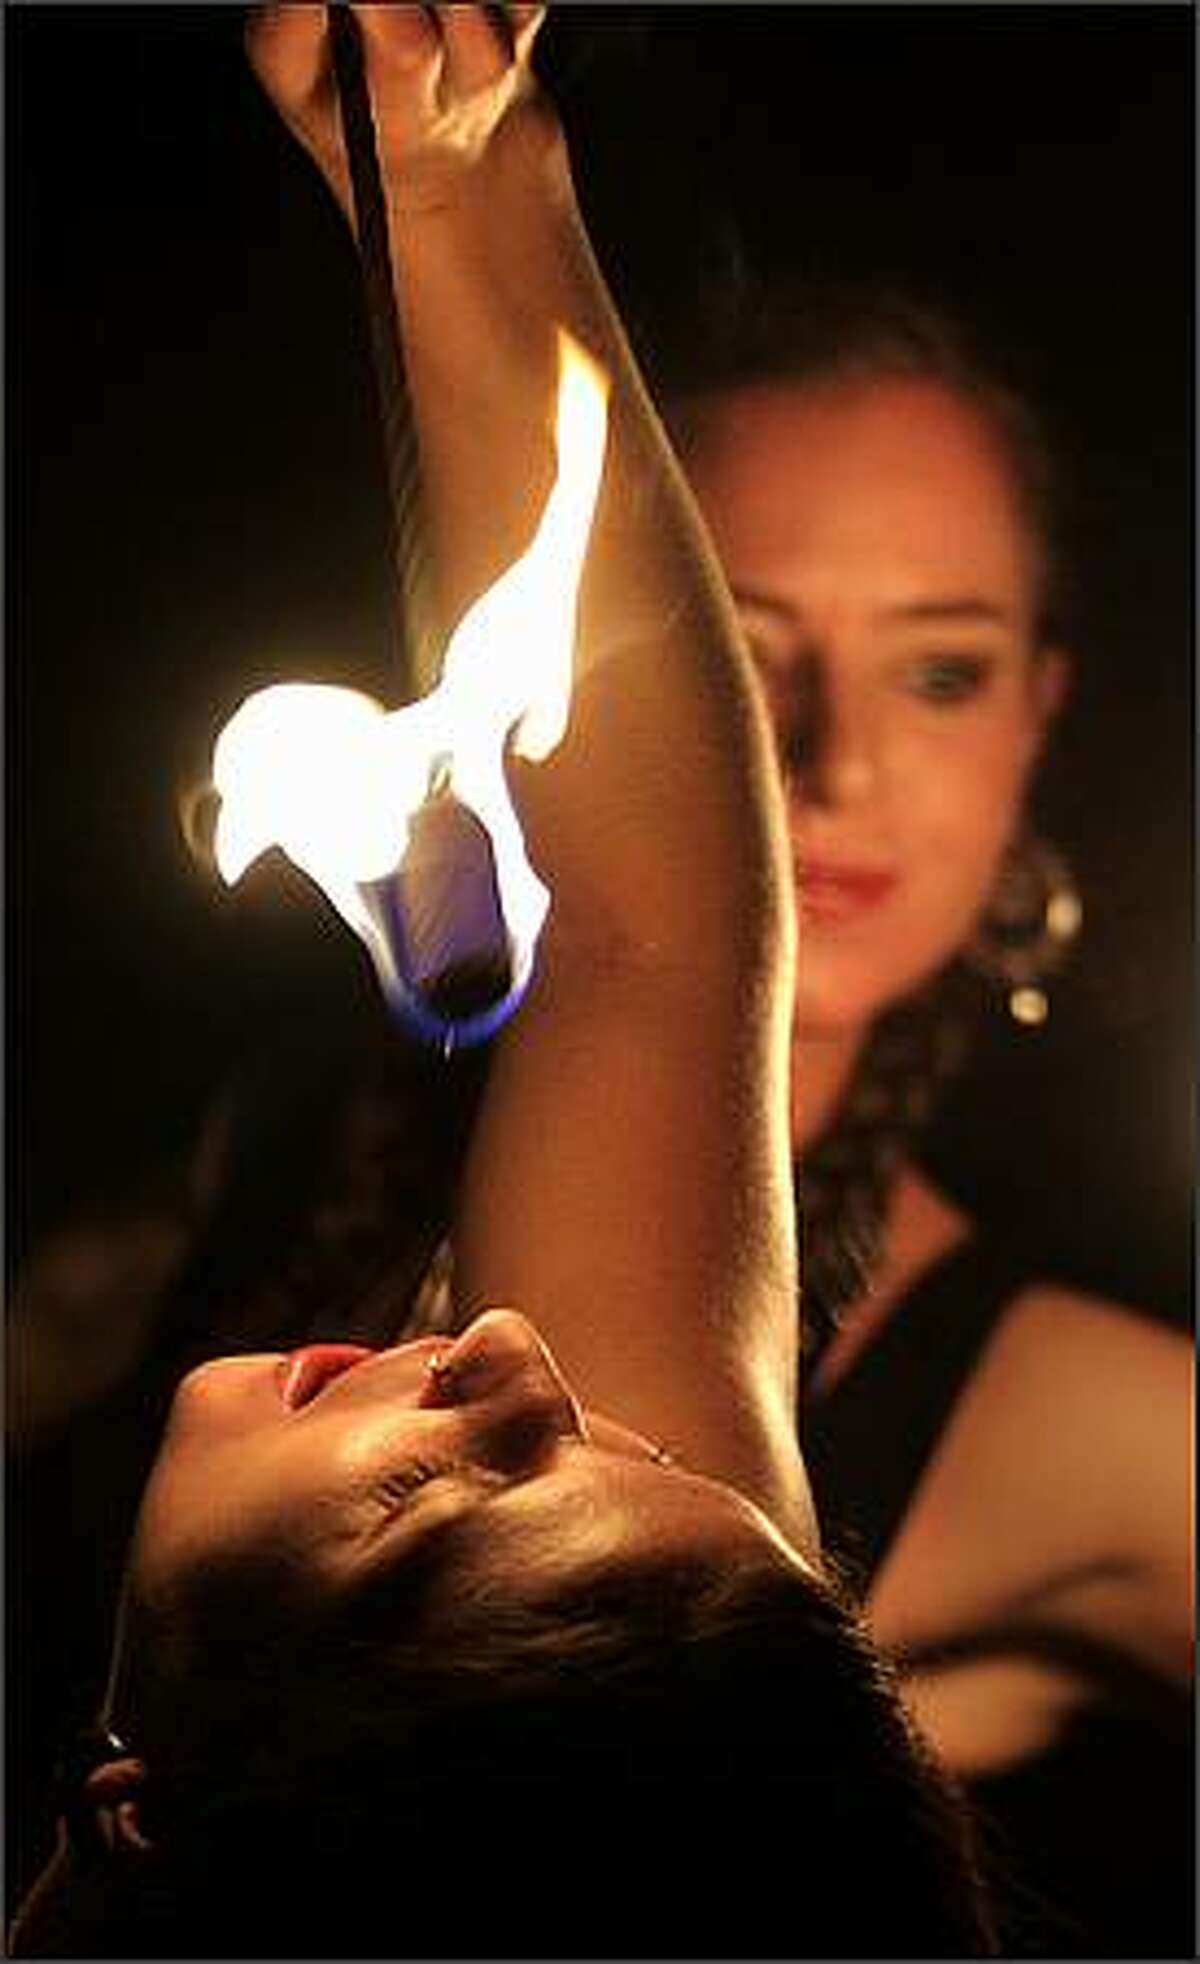 Elizabeth Indigo prepares to swallow fire while performing with Kim Brown and the rest of Pyrosutra Incendiary Dance at McCaw Lecture Hall in Seattle. Dec. 5, 2008